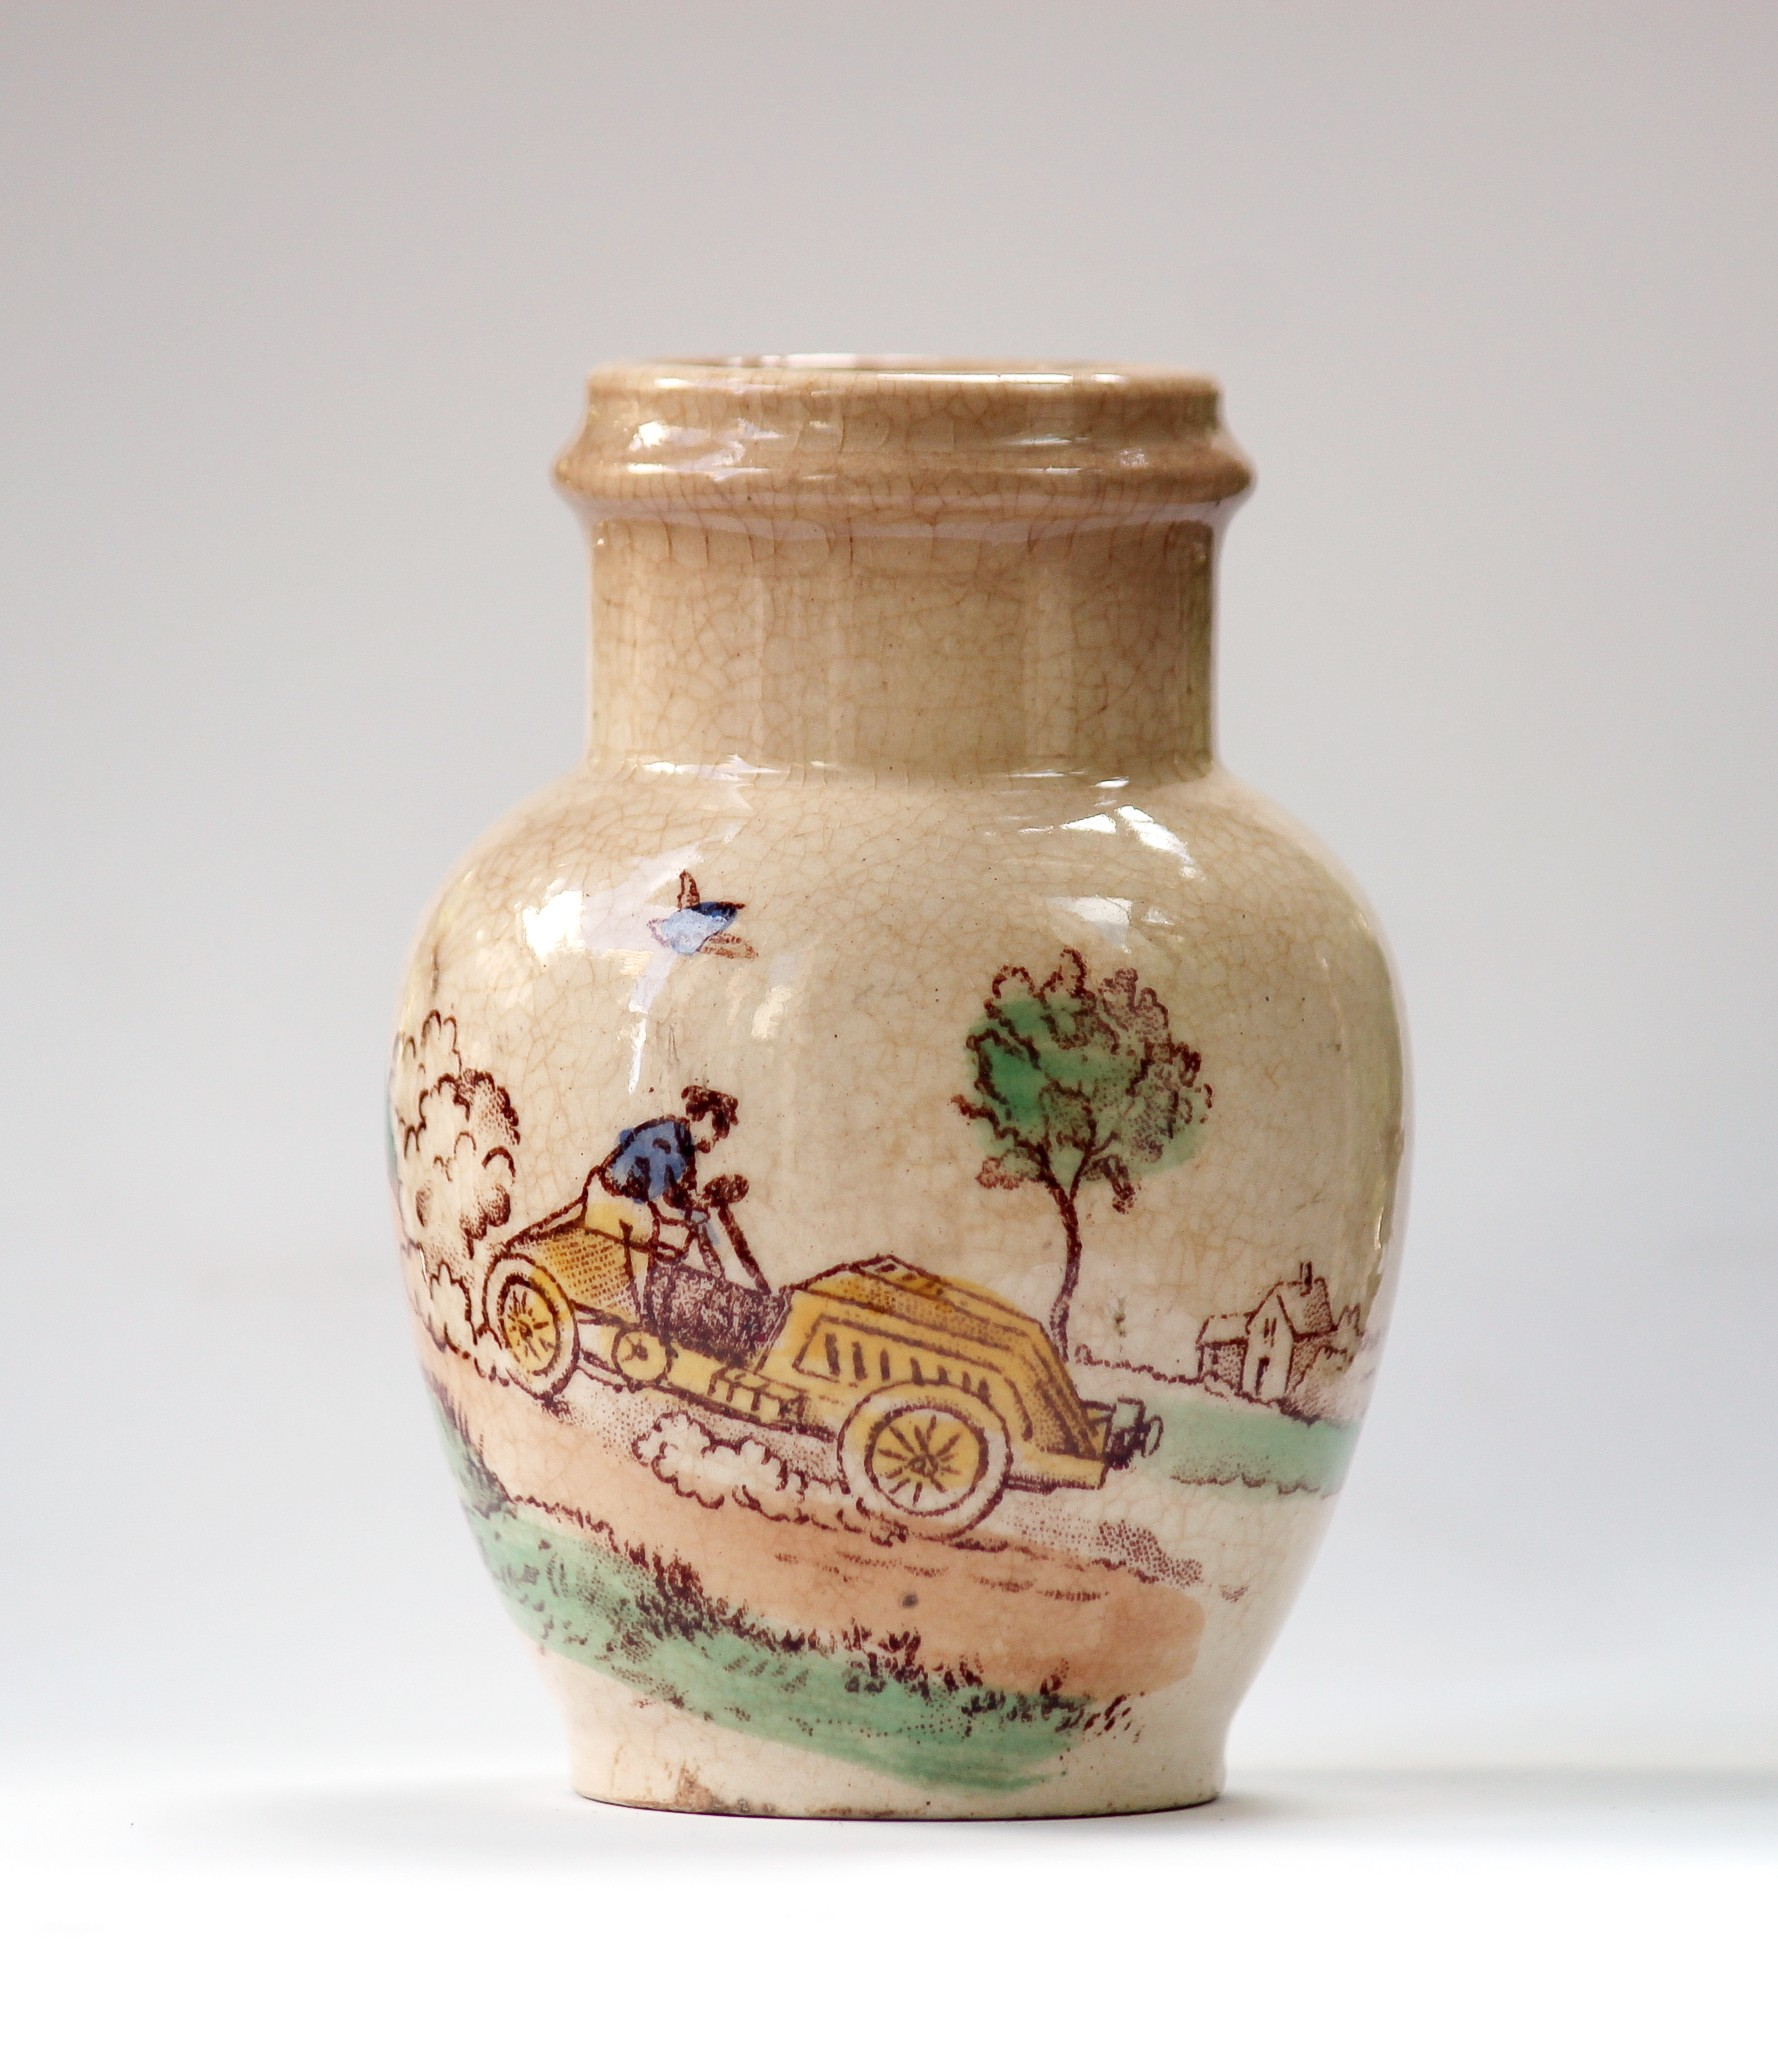 c.1900 Mustard Pot with motoring scene by Gien